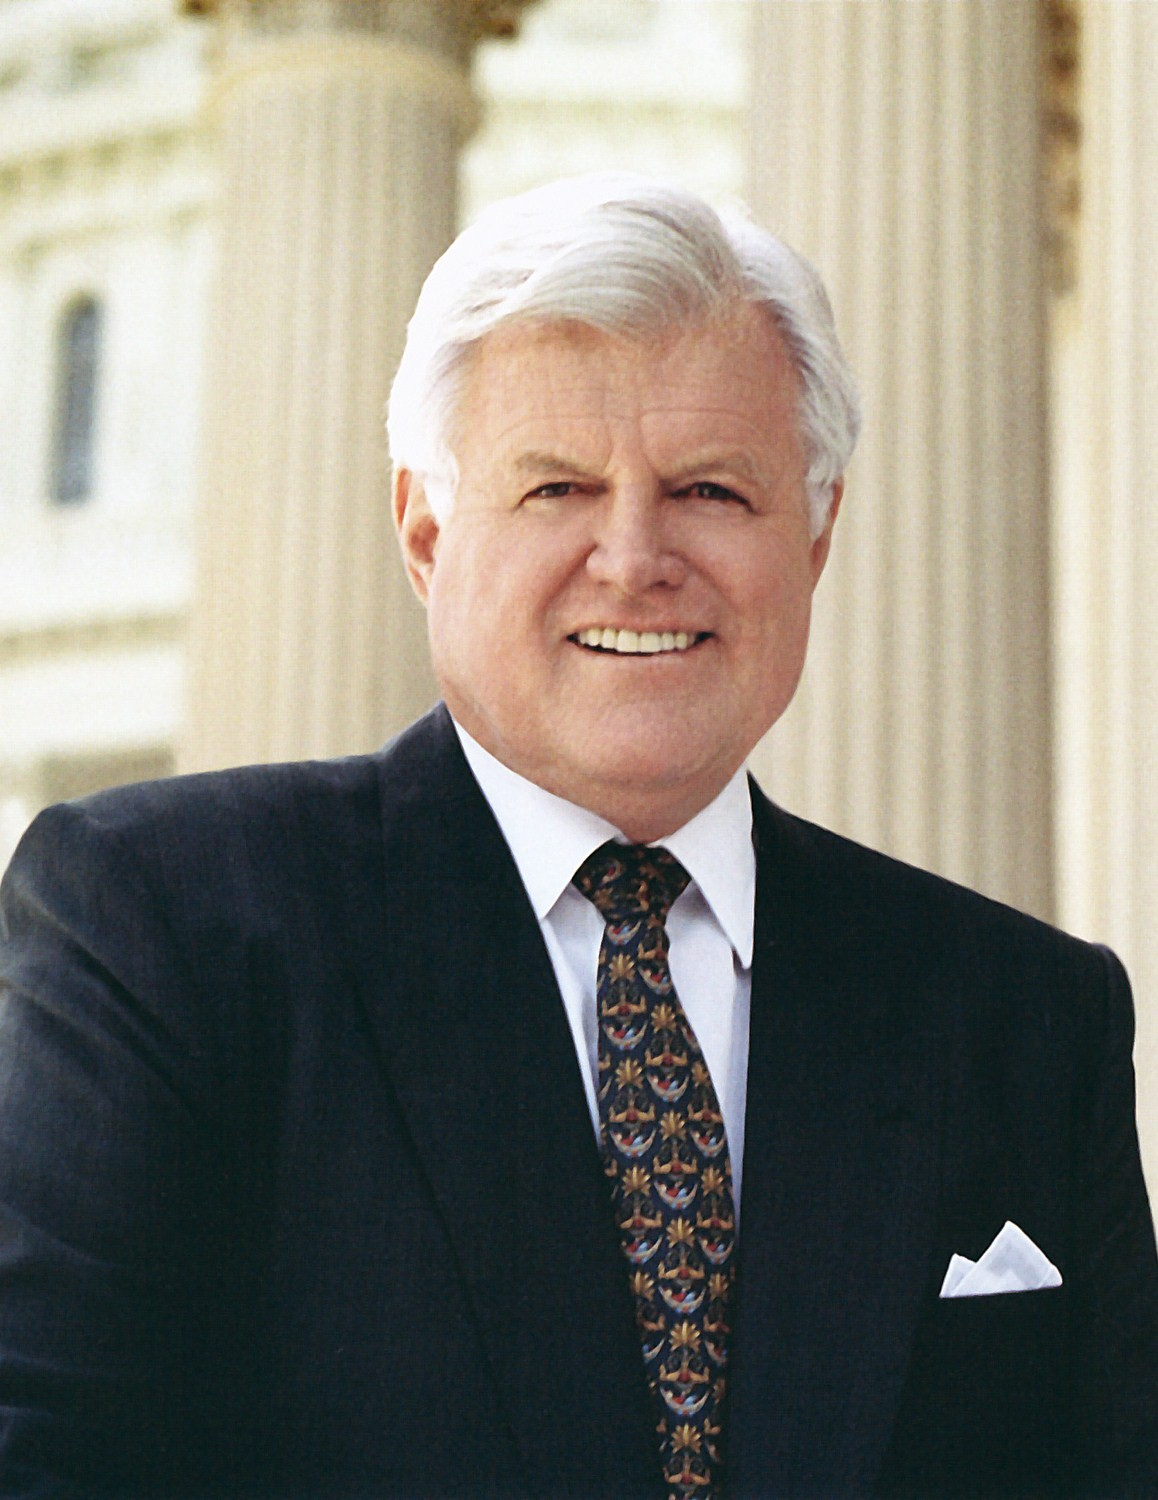 9 -  In 1969, Ted Kennedy drove his car off a bridge on Chappaquiddick, an island near Martha's Vineyard. The car went into the water, and though Kennedy swam free, his passenger, Mary Jo Kopechne, drowned in the overturned vehicle. Kennedy fled the scene and waited nine hours to report the incident he later pleaded guilty to leaving the scene of an accident.